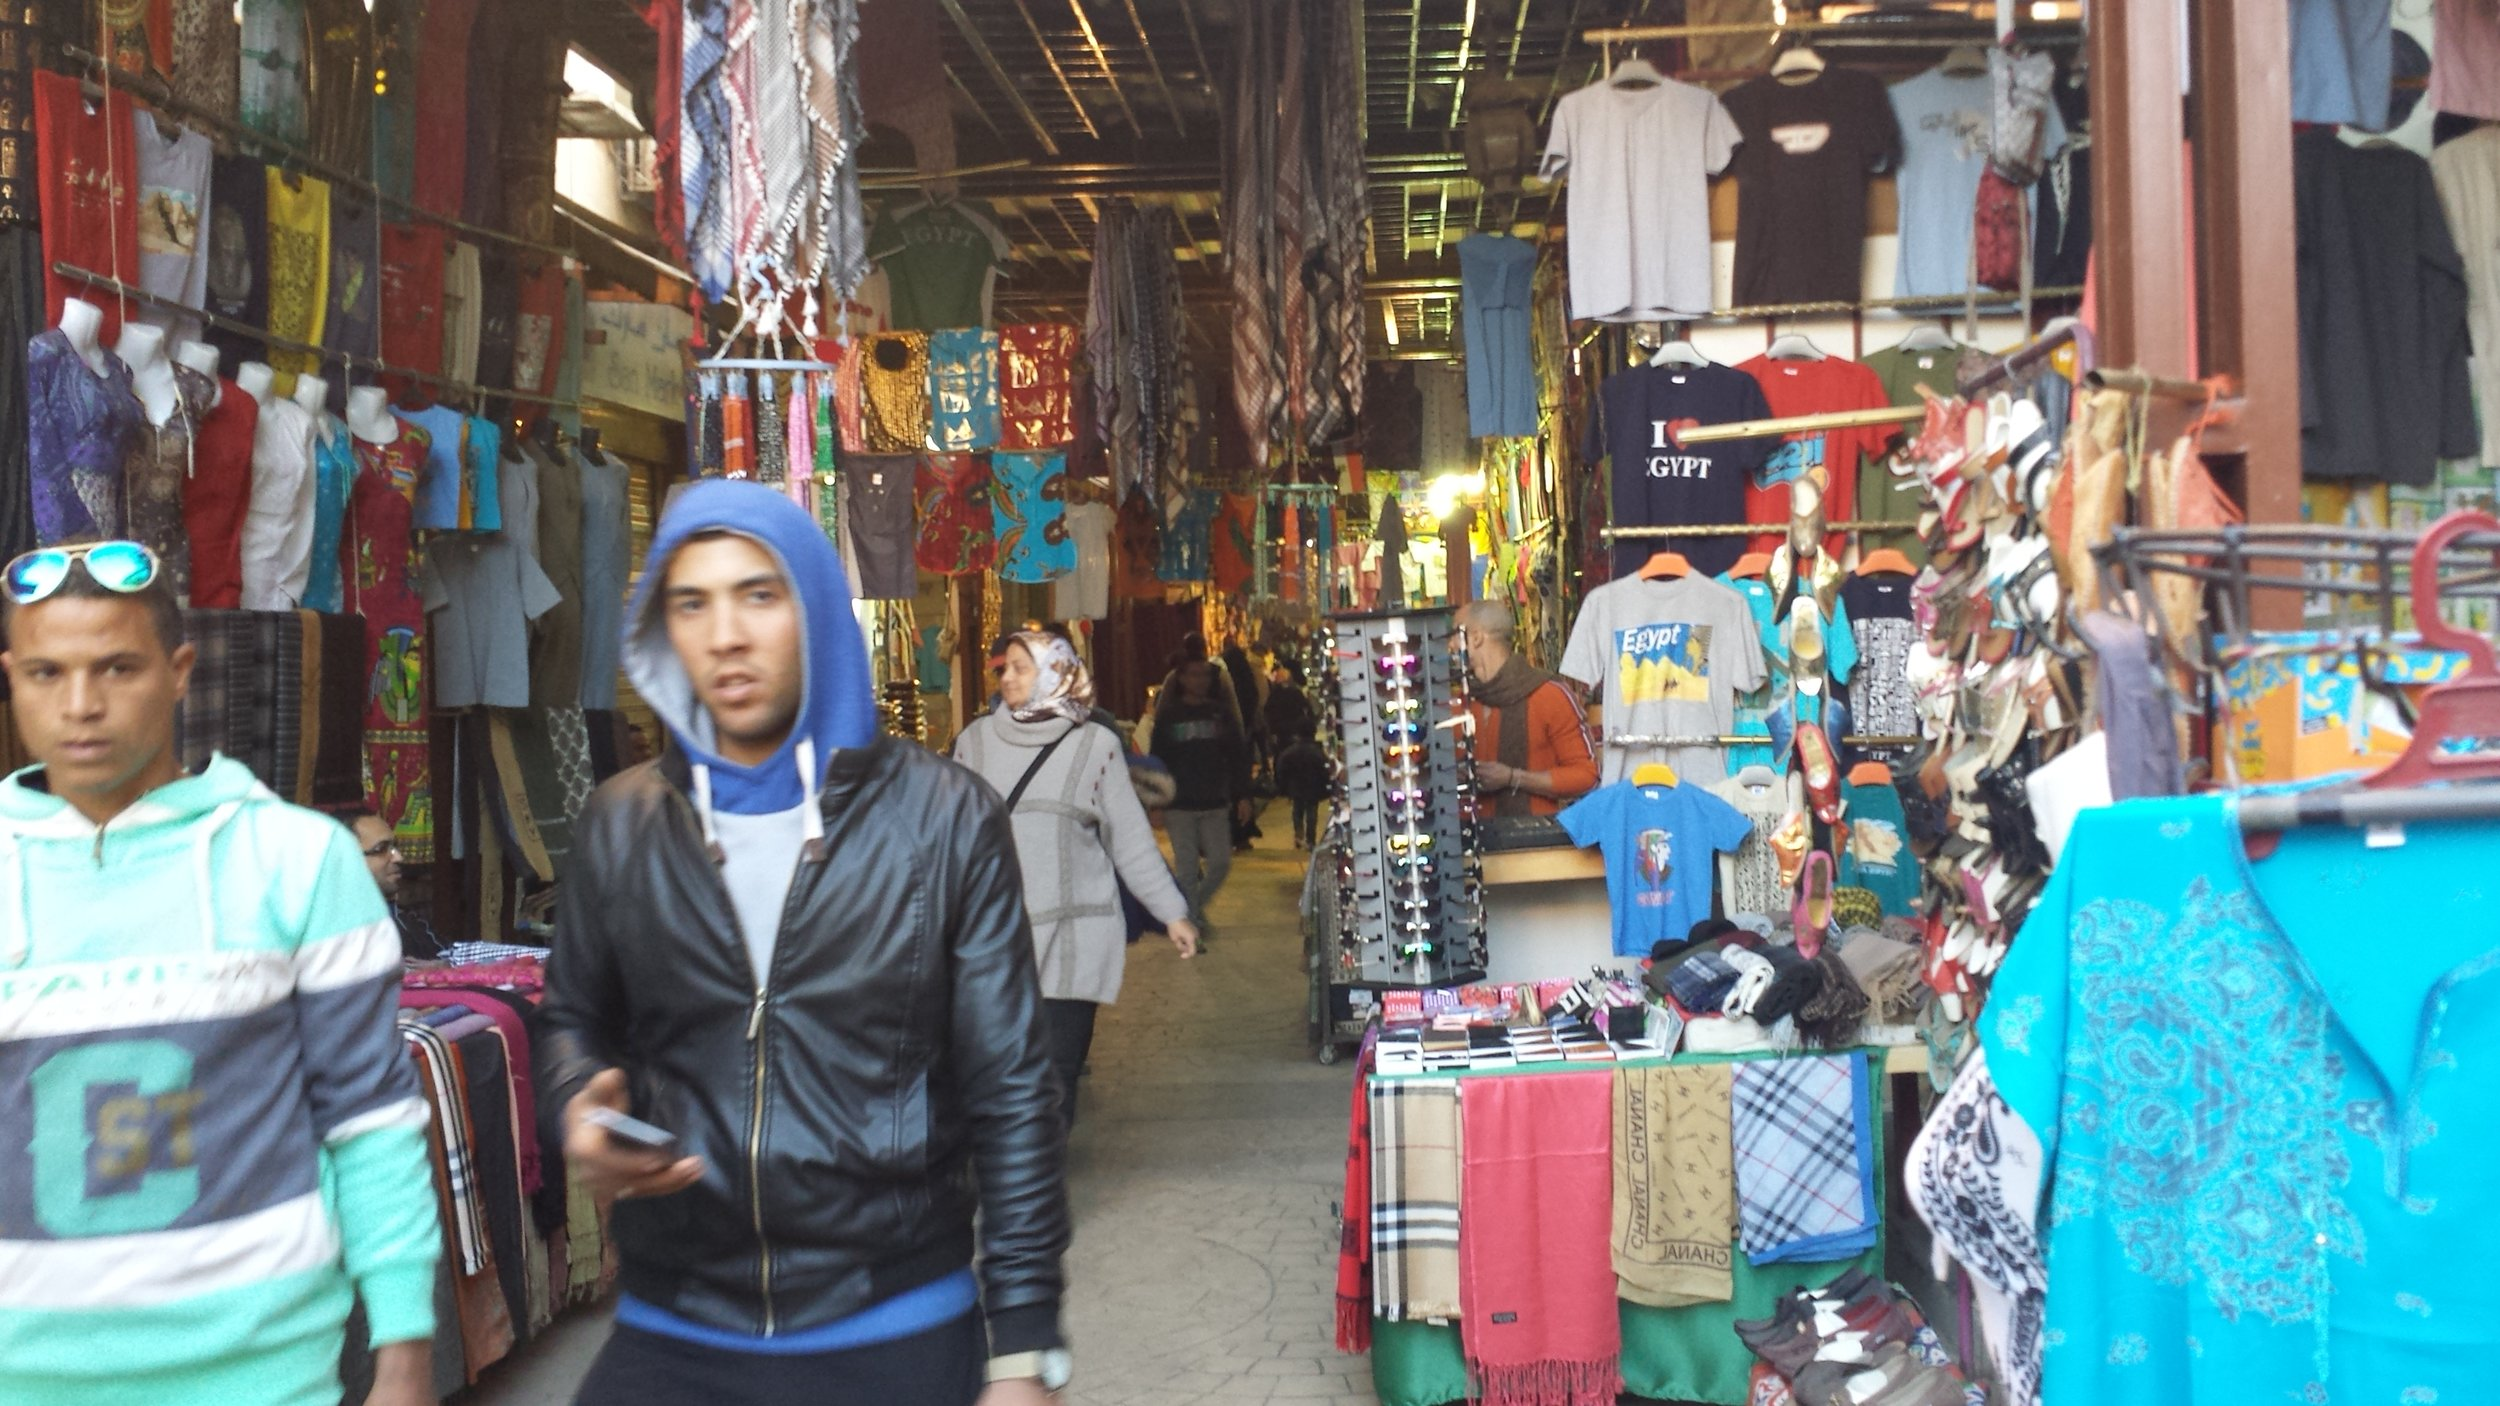 This is actually a picture of Luxor's bazaar, but its crowded enough to give you an idea of what Khan Al-khalili is like.